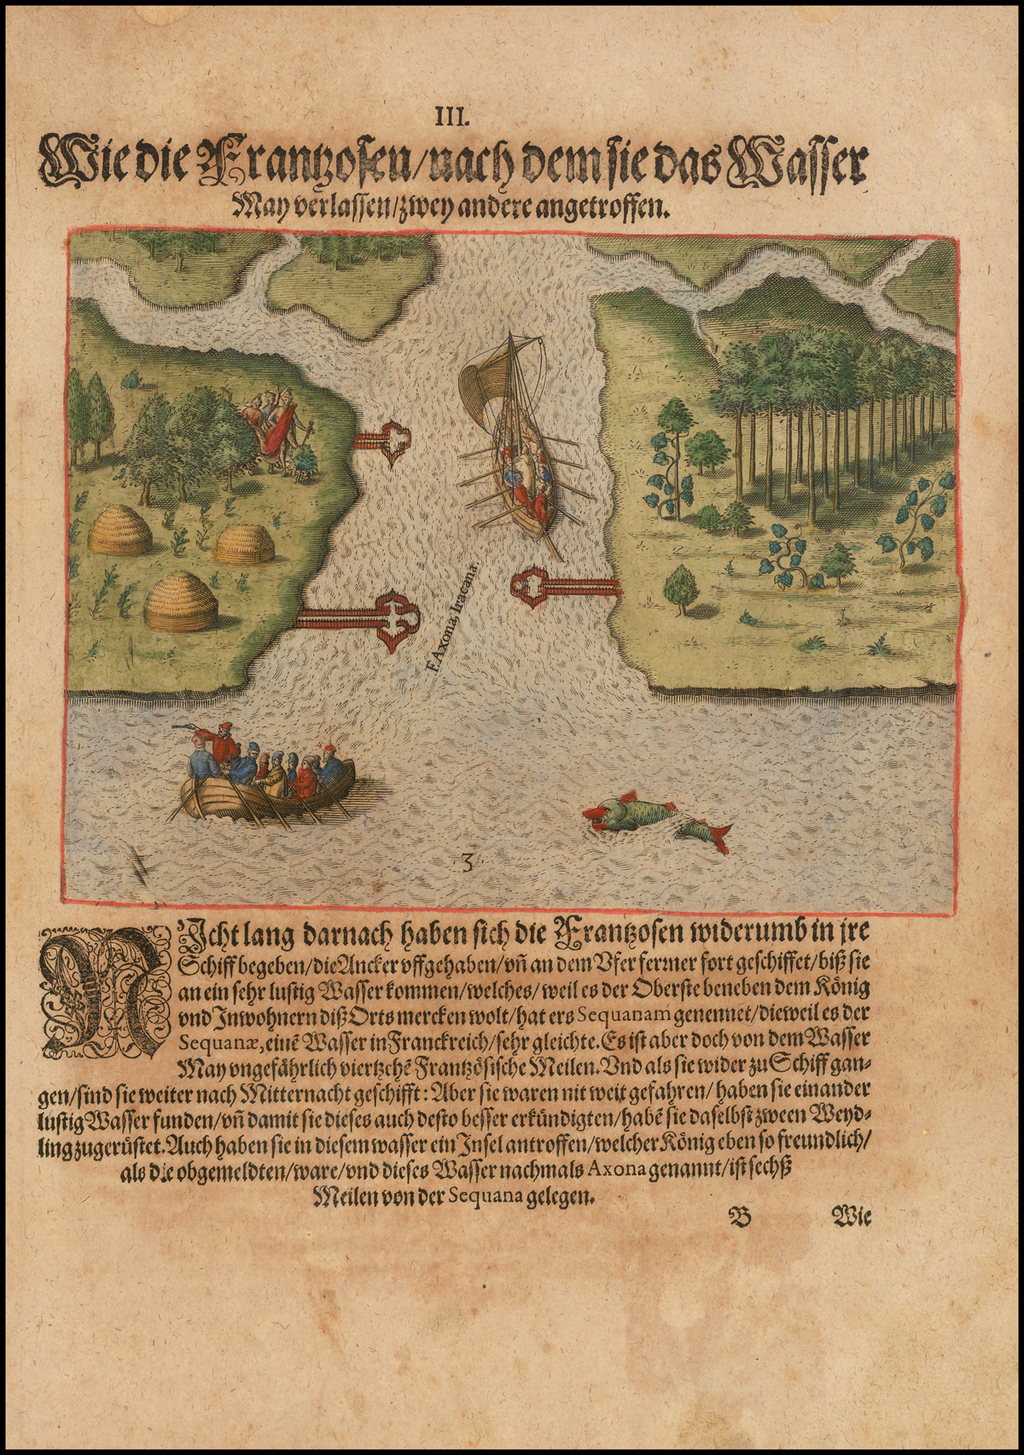 [French Discoveries on the Georgia Coastline] By Theodor De Bry